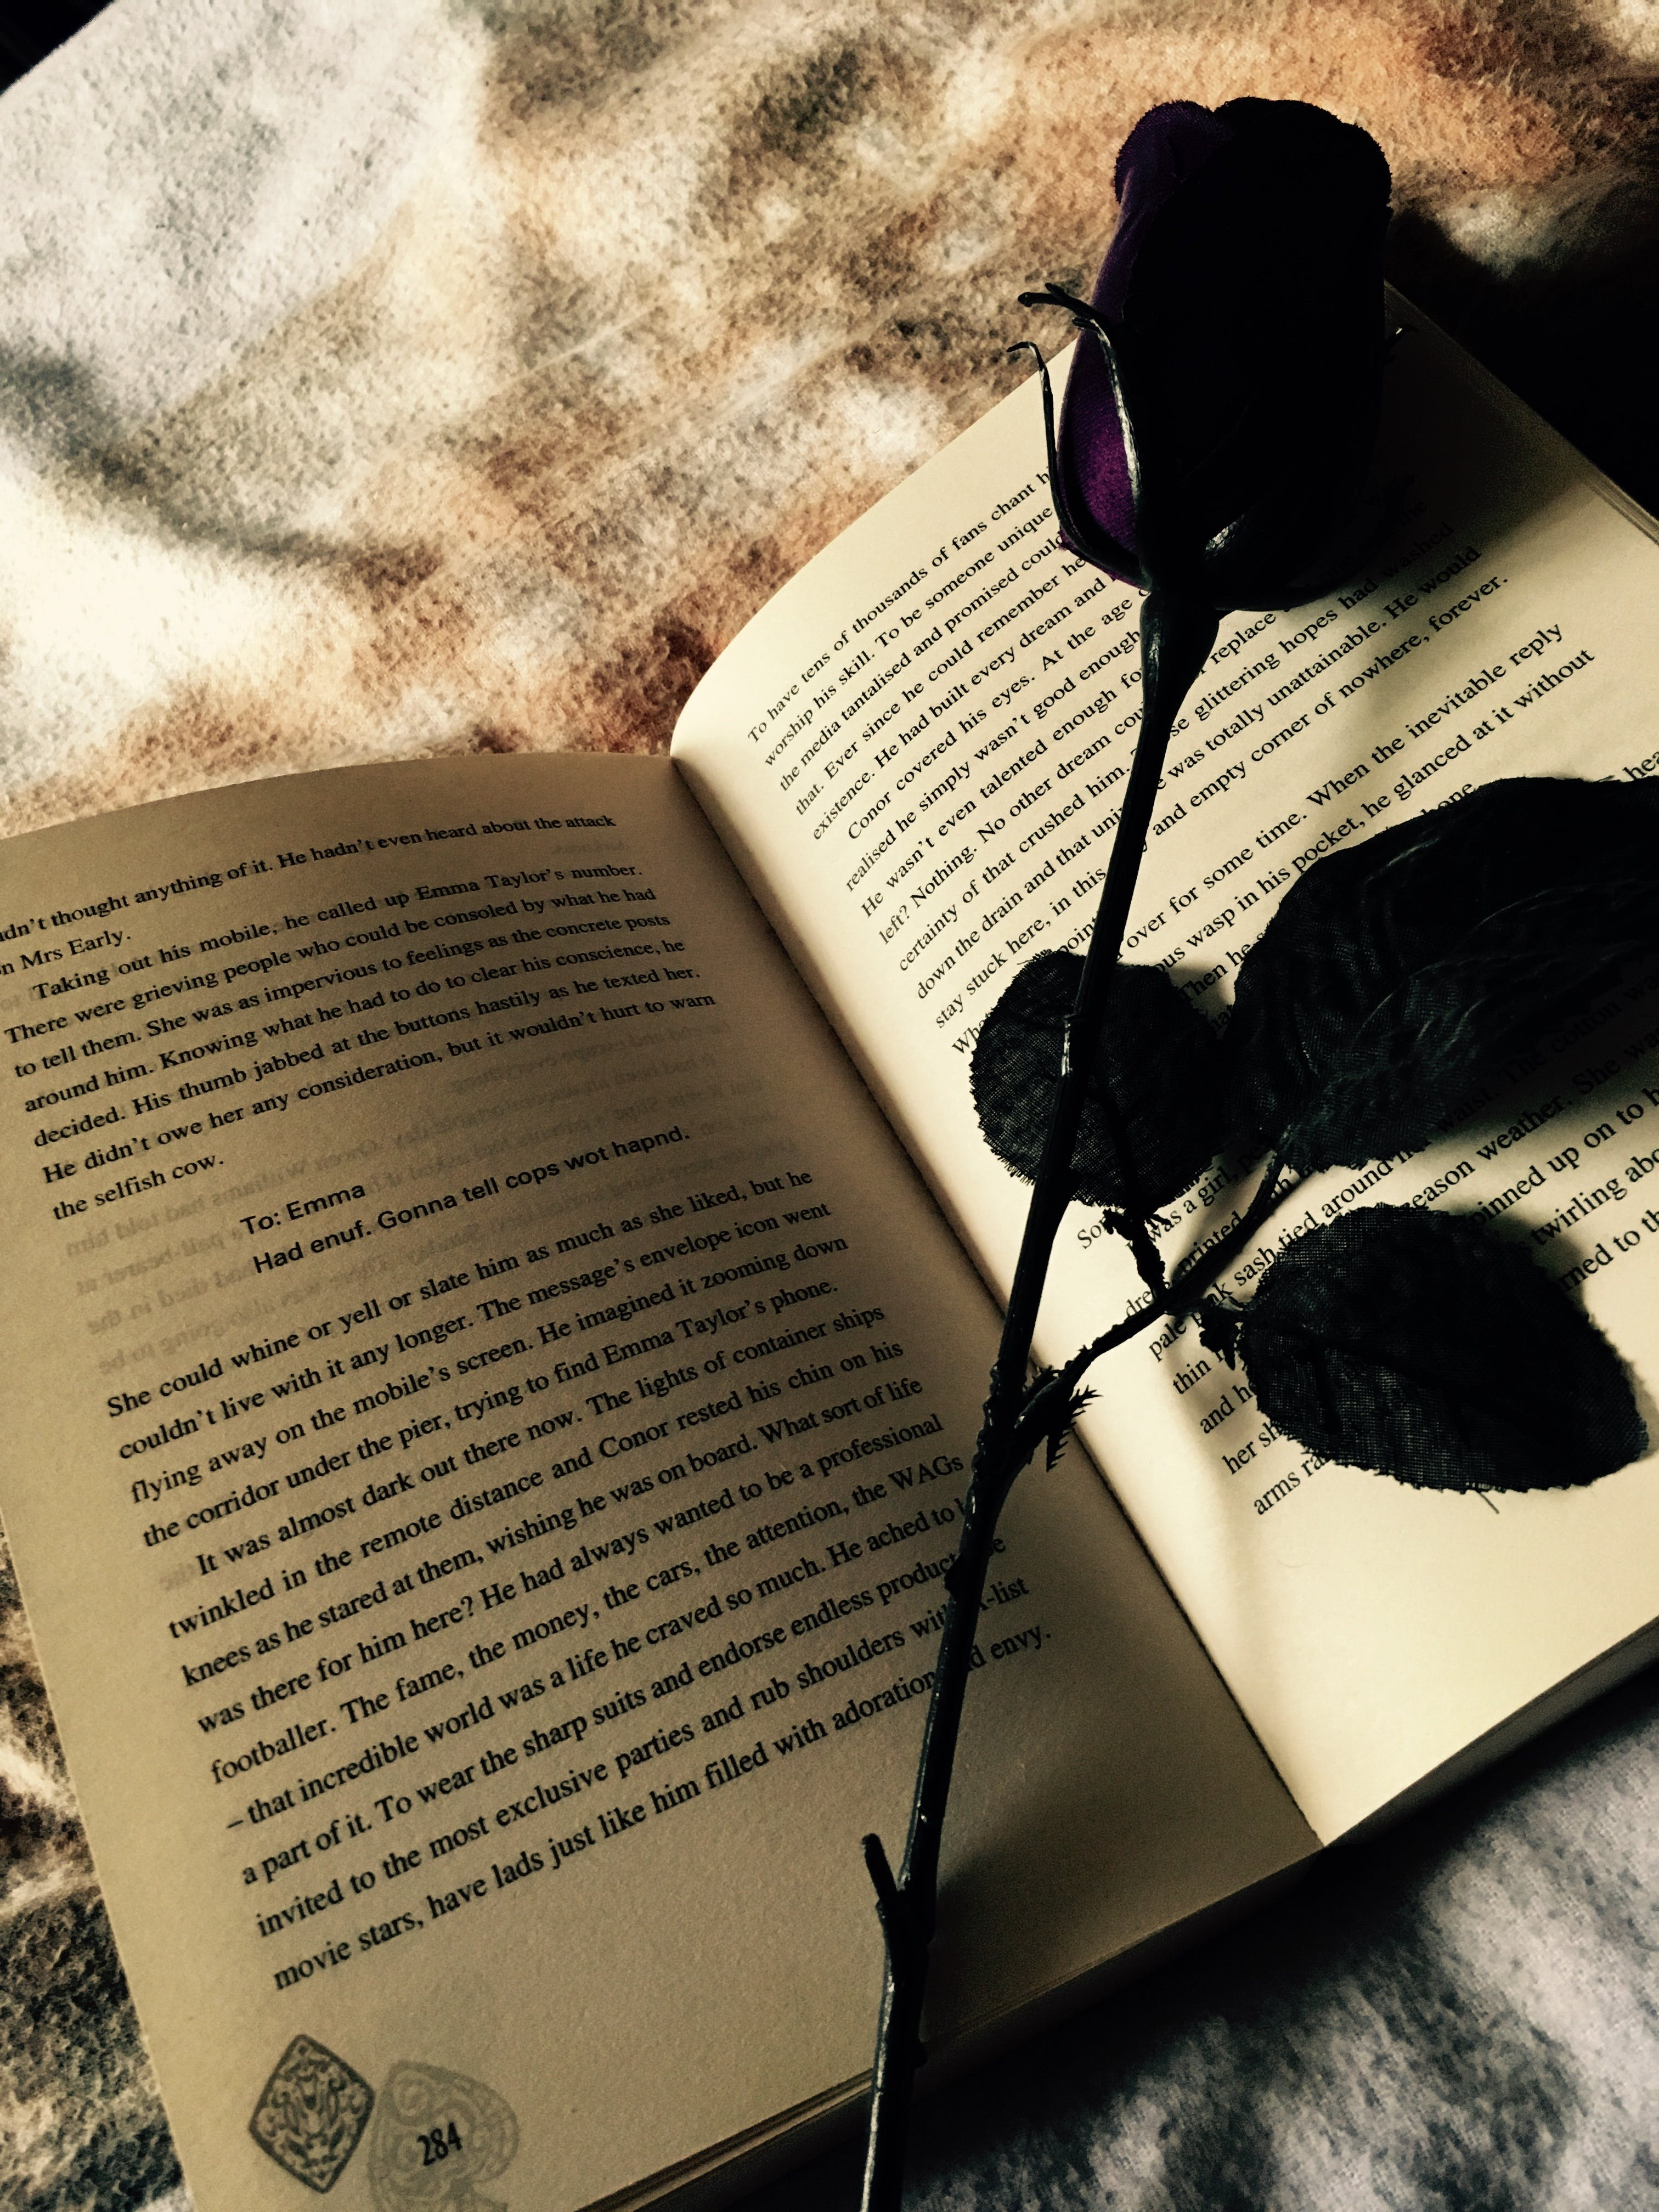 Free stock photo of books, rose, pages, dancing jax